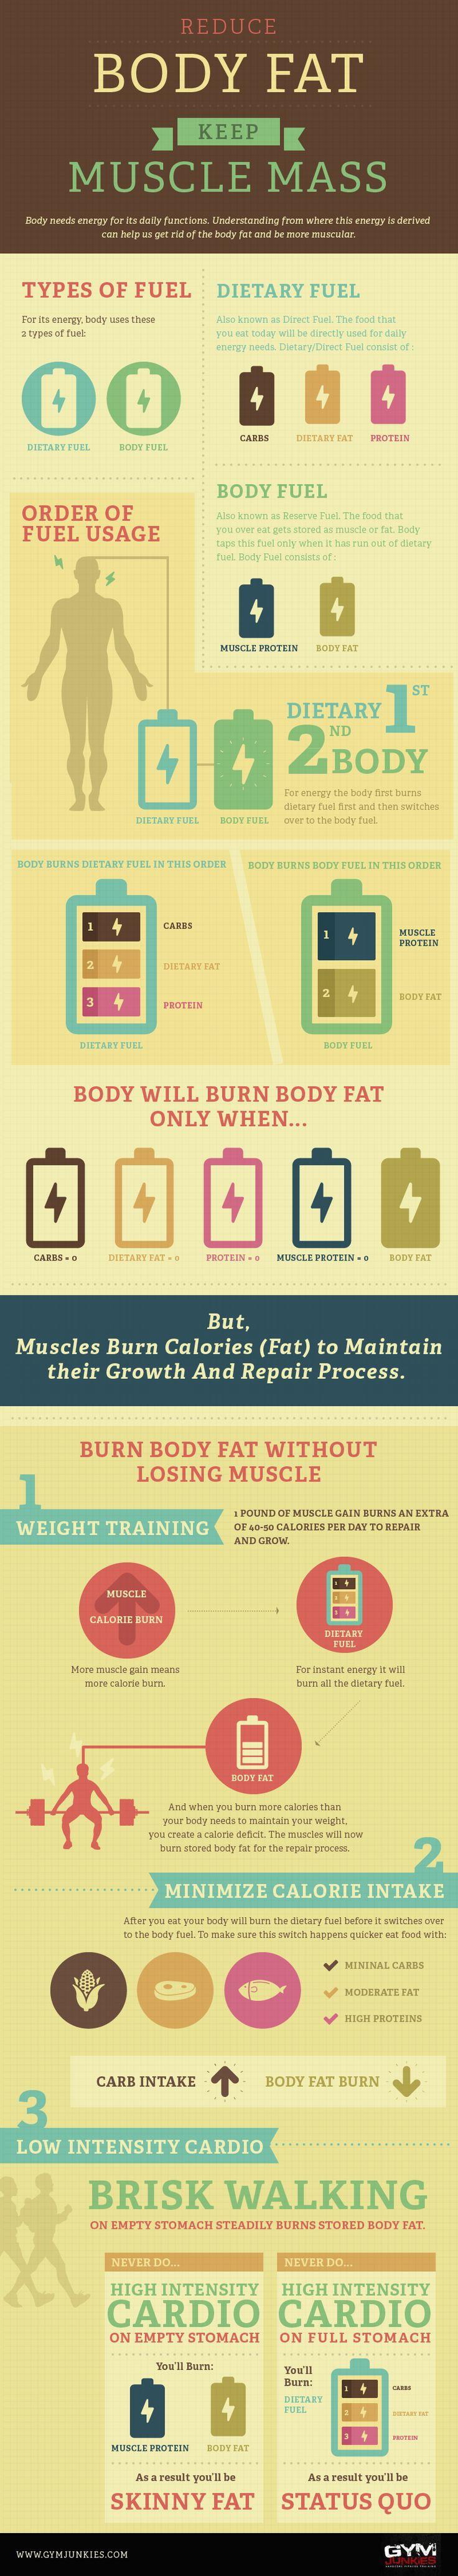 Reduce Your Body Fat Keep Muscle Mass   ...To read more on living healthy, check out my blog @ guysandgoodhealth.com